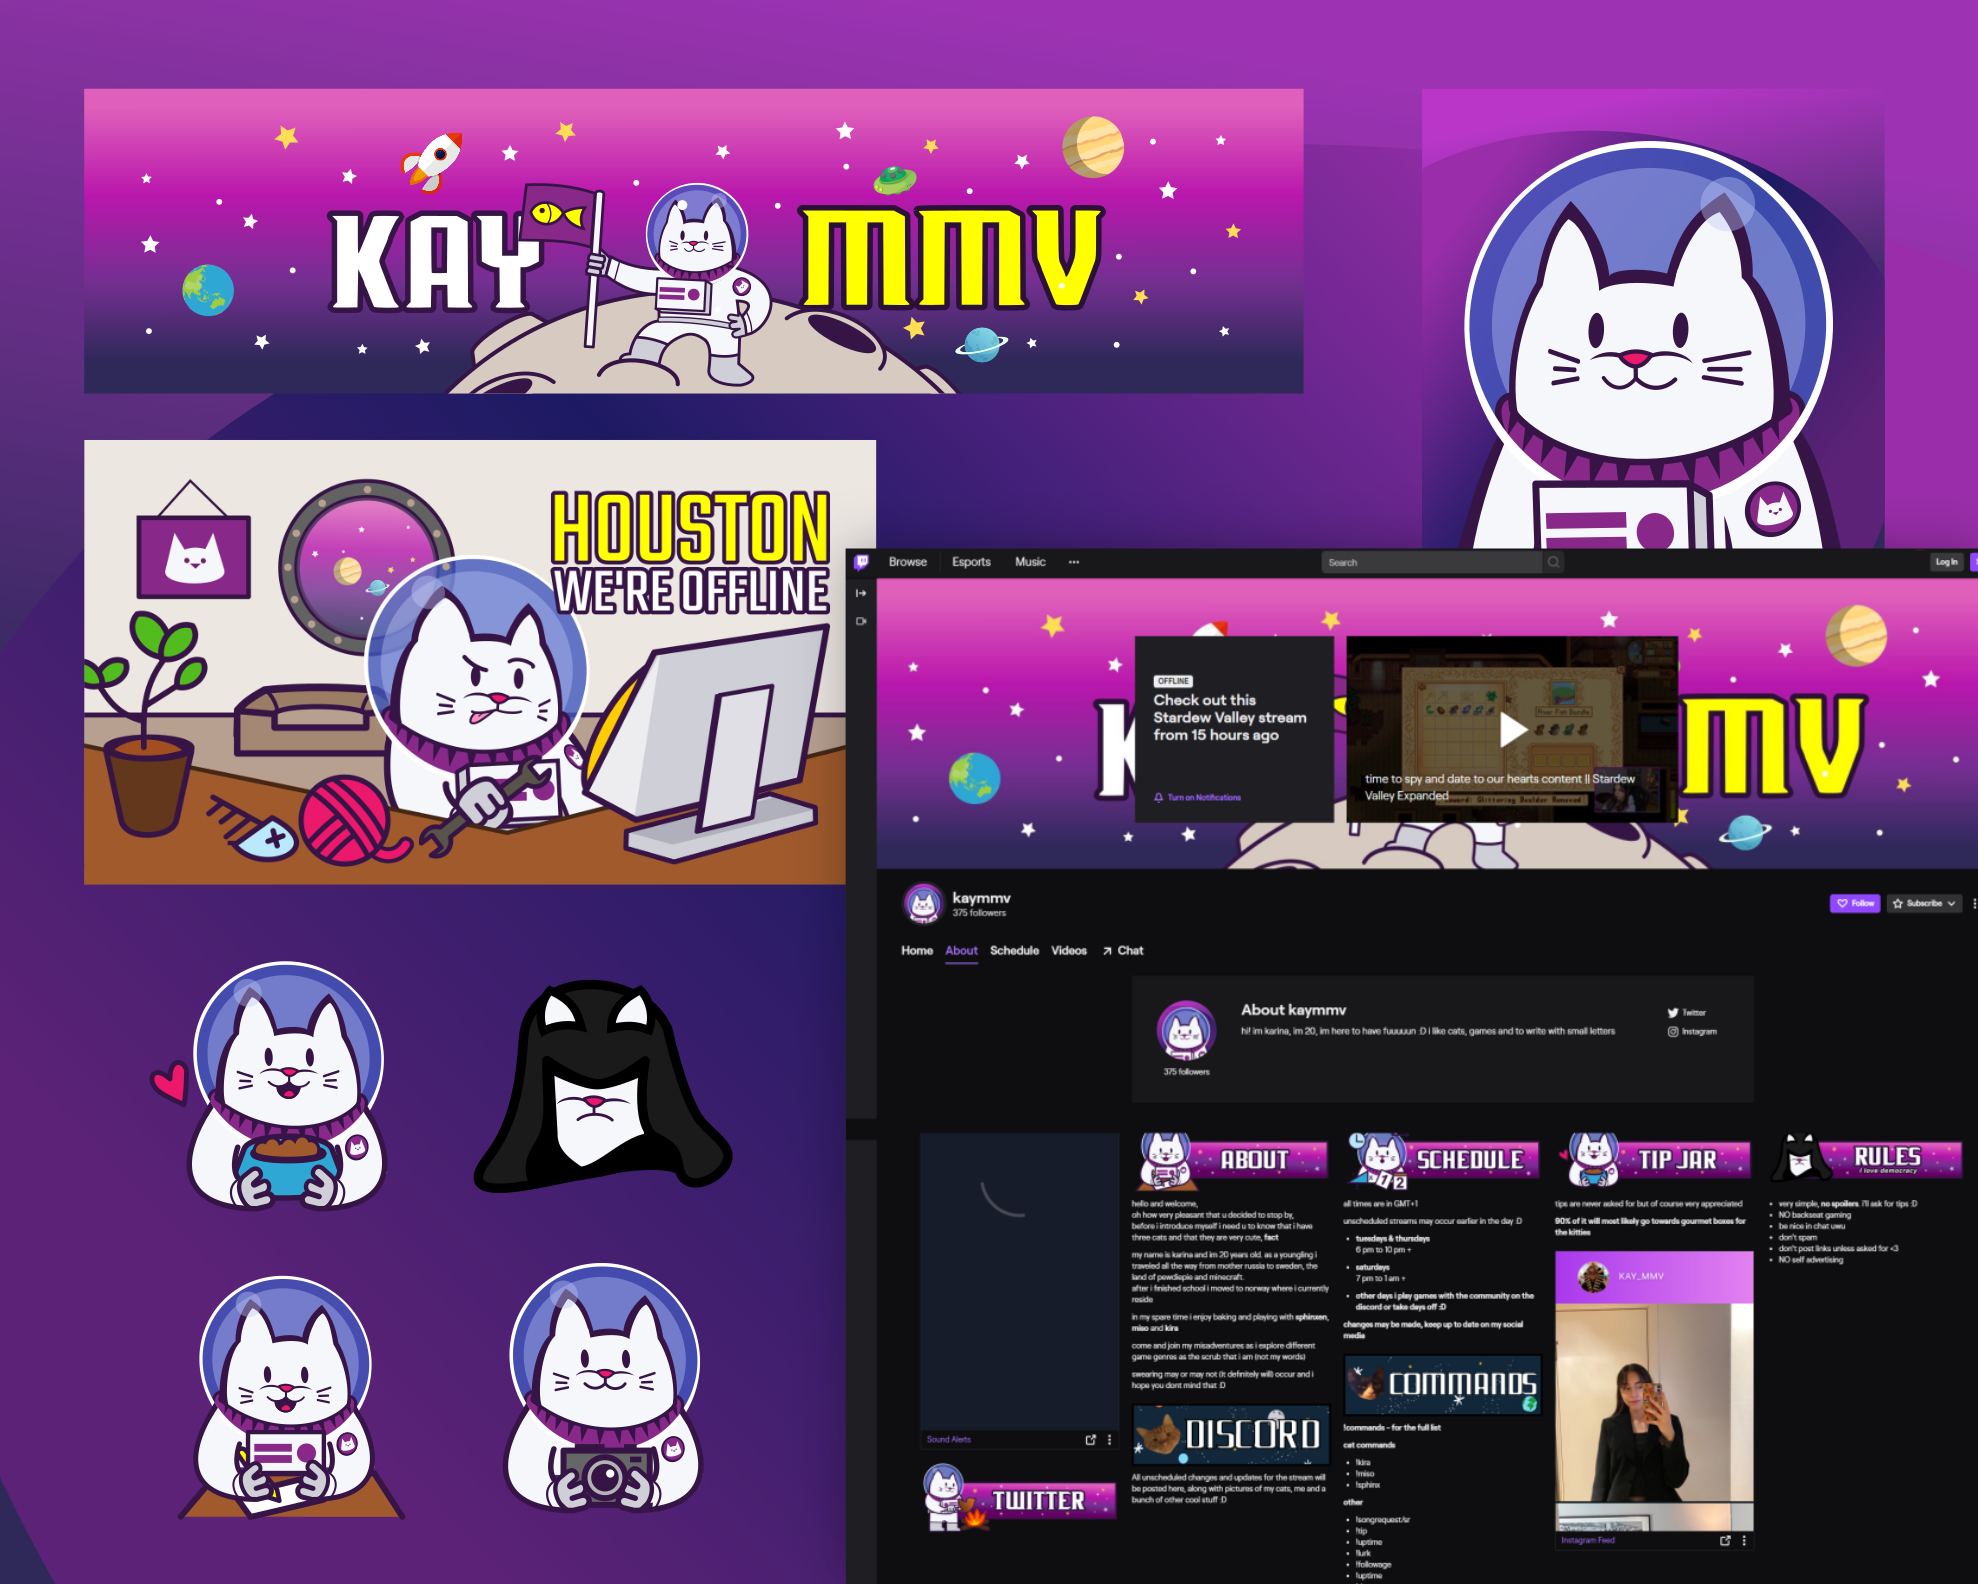 Twitch graphics for kayMMV. Designed by Johnery